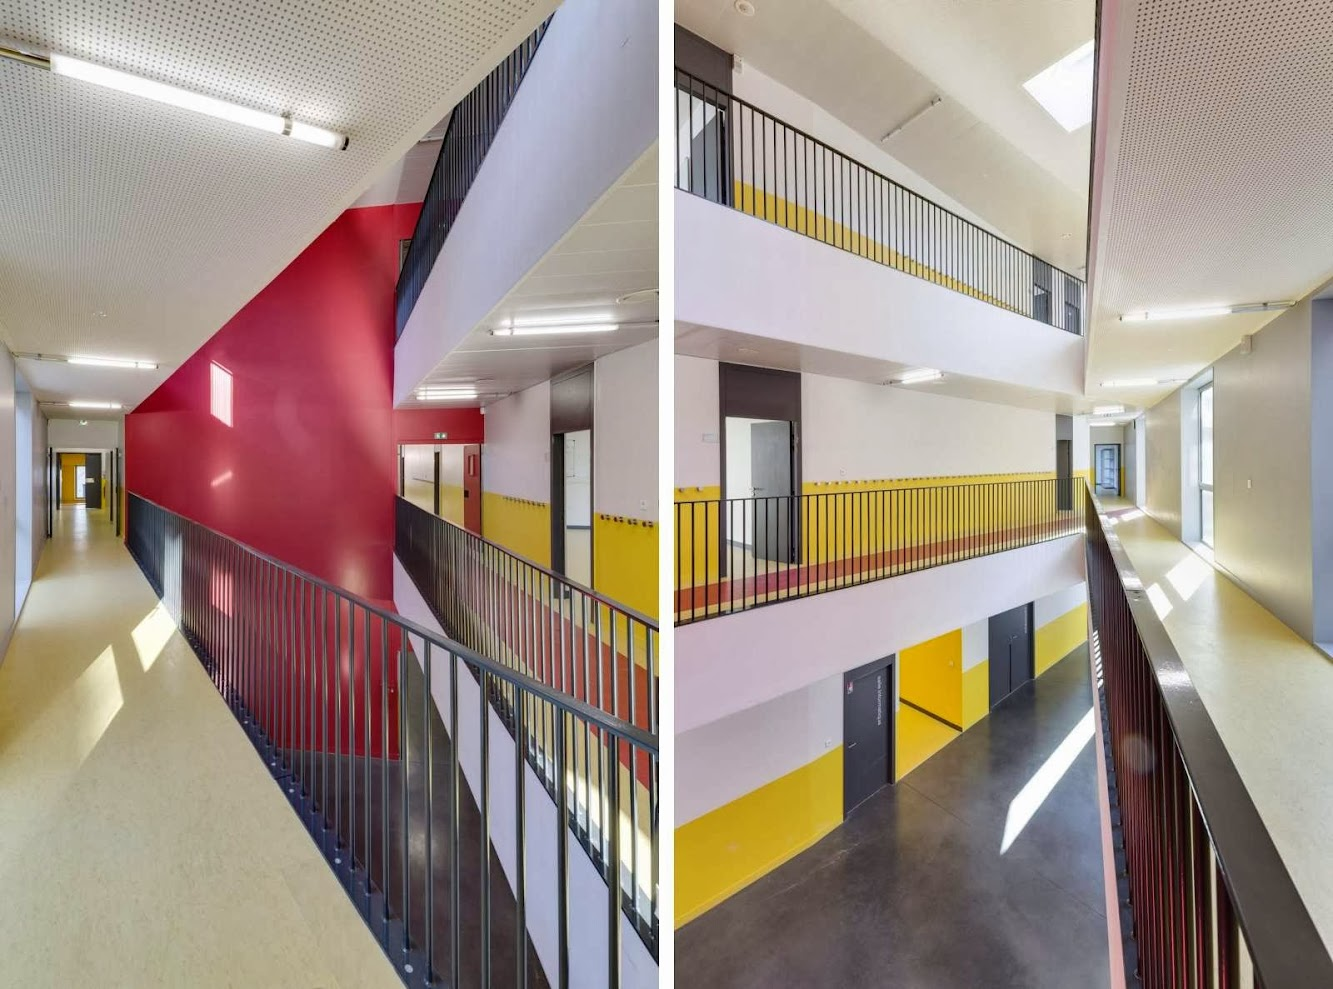 Docks school by Mikou design studio